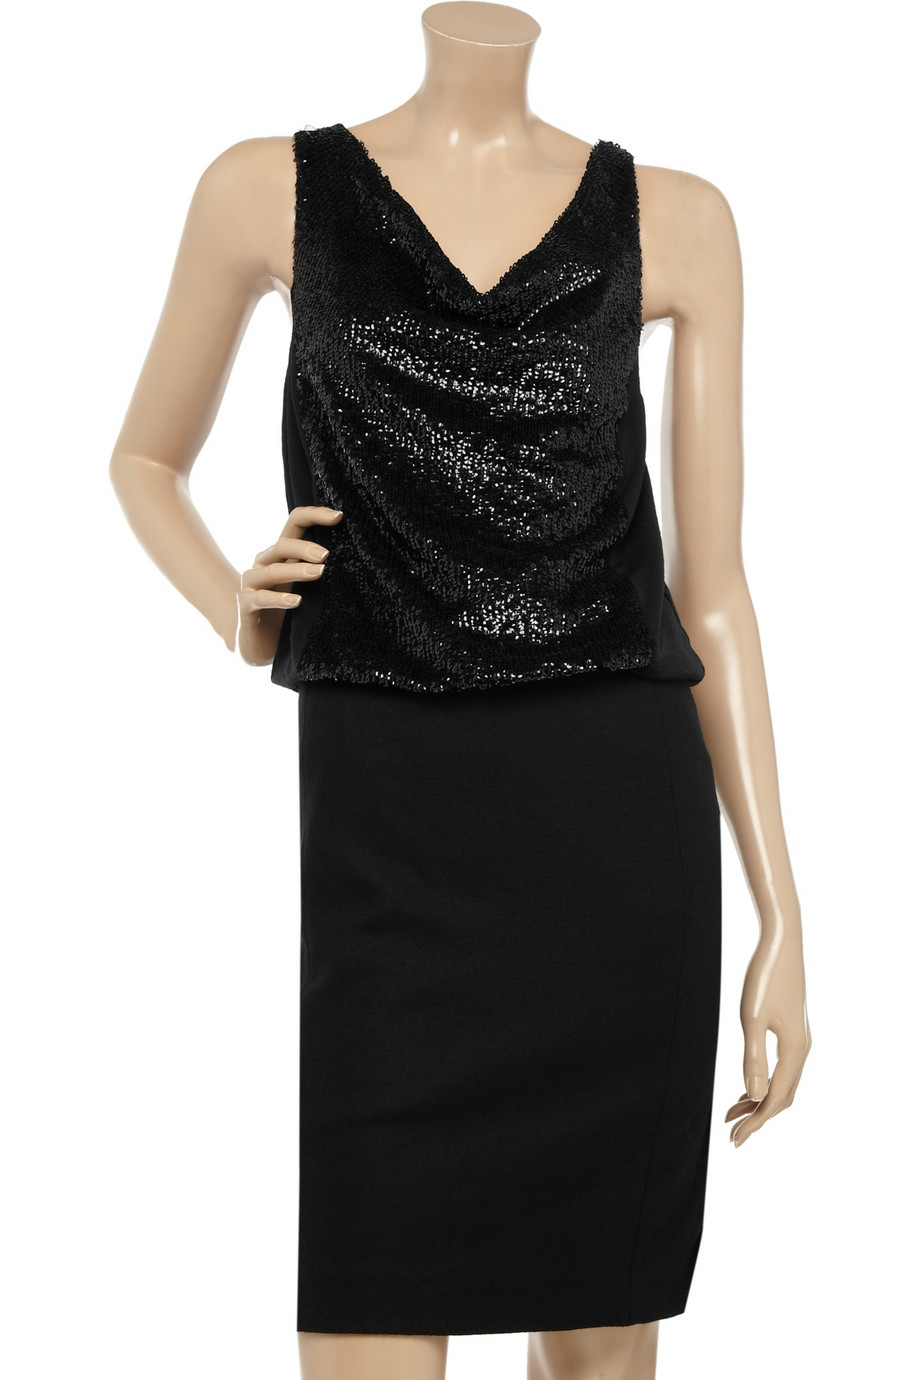 Tory Burch Idaline Sequined Stretch-wool Dress ($188 The Outnet)